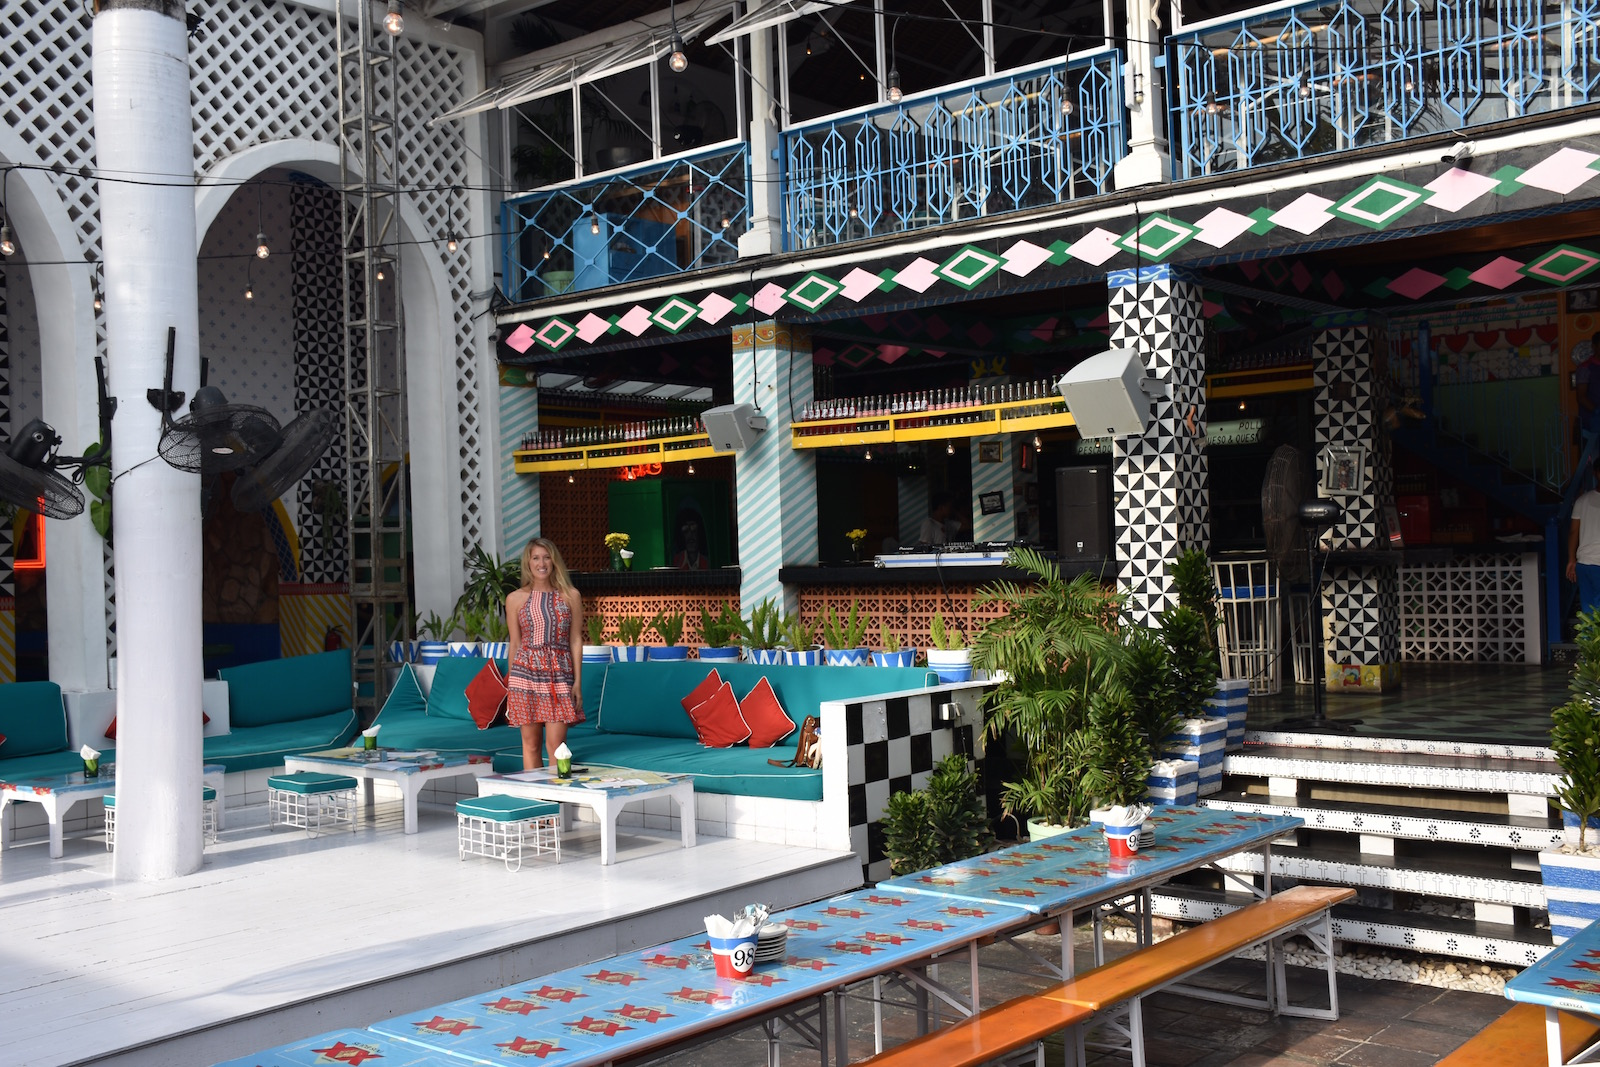 motel-mexicola-we-are-travel-girls-bali-event-7